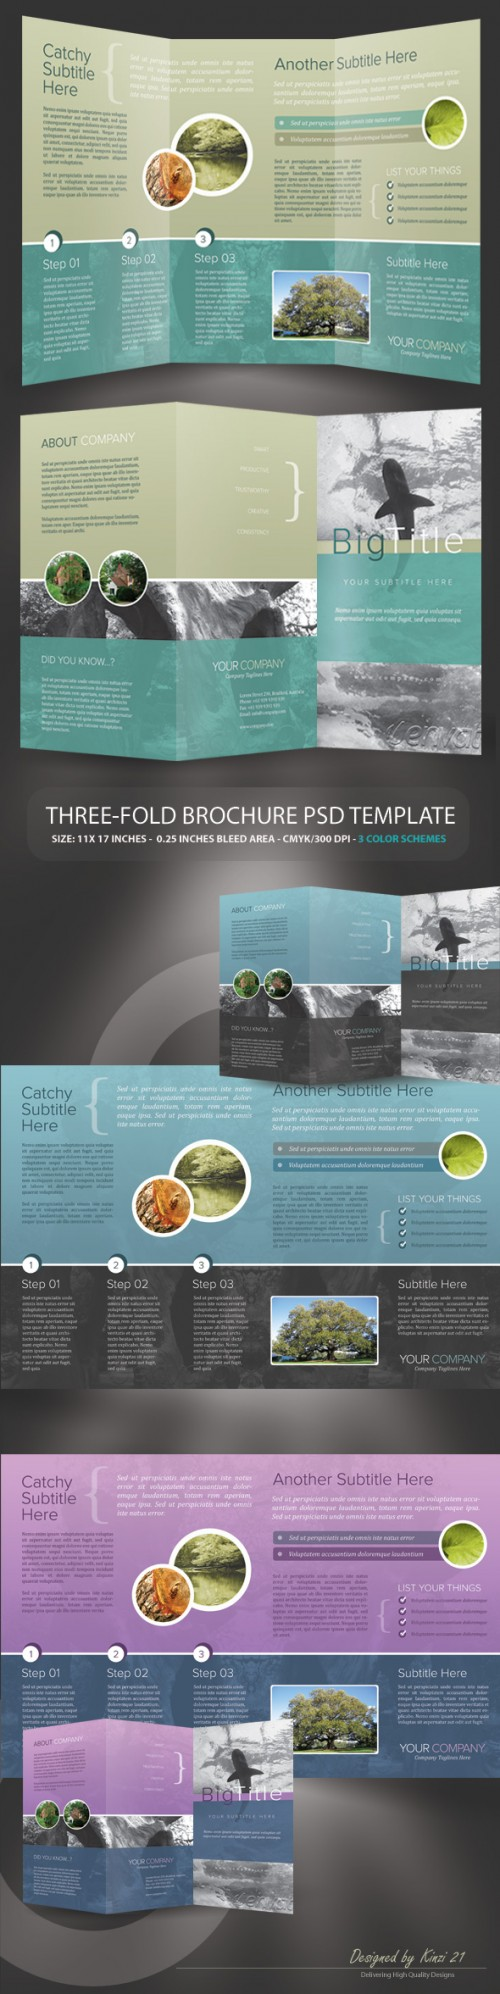 23_Corporate Trifold Brochure